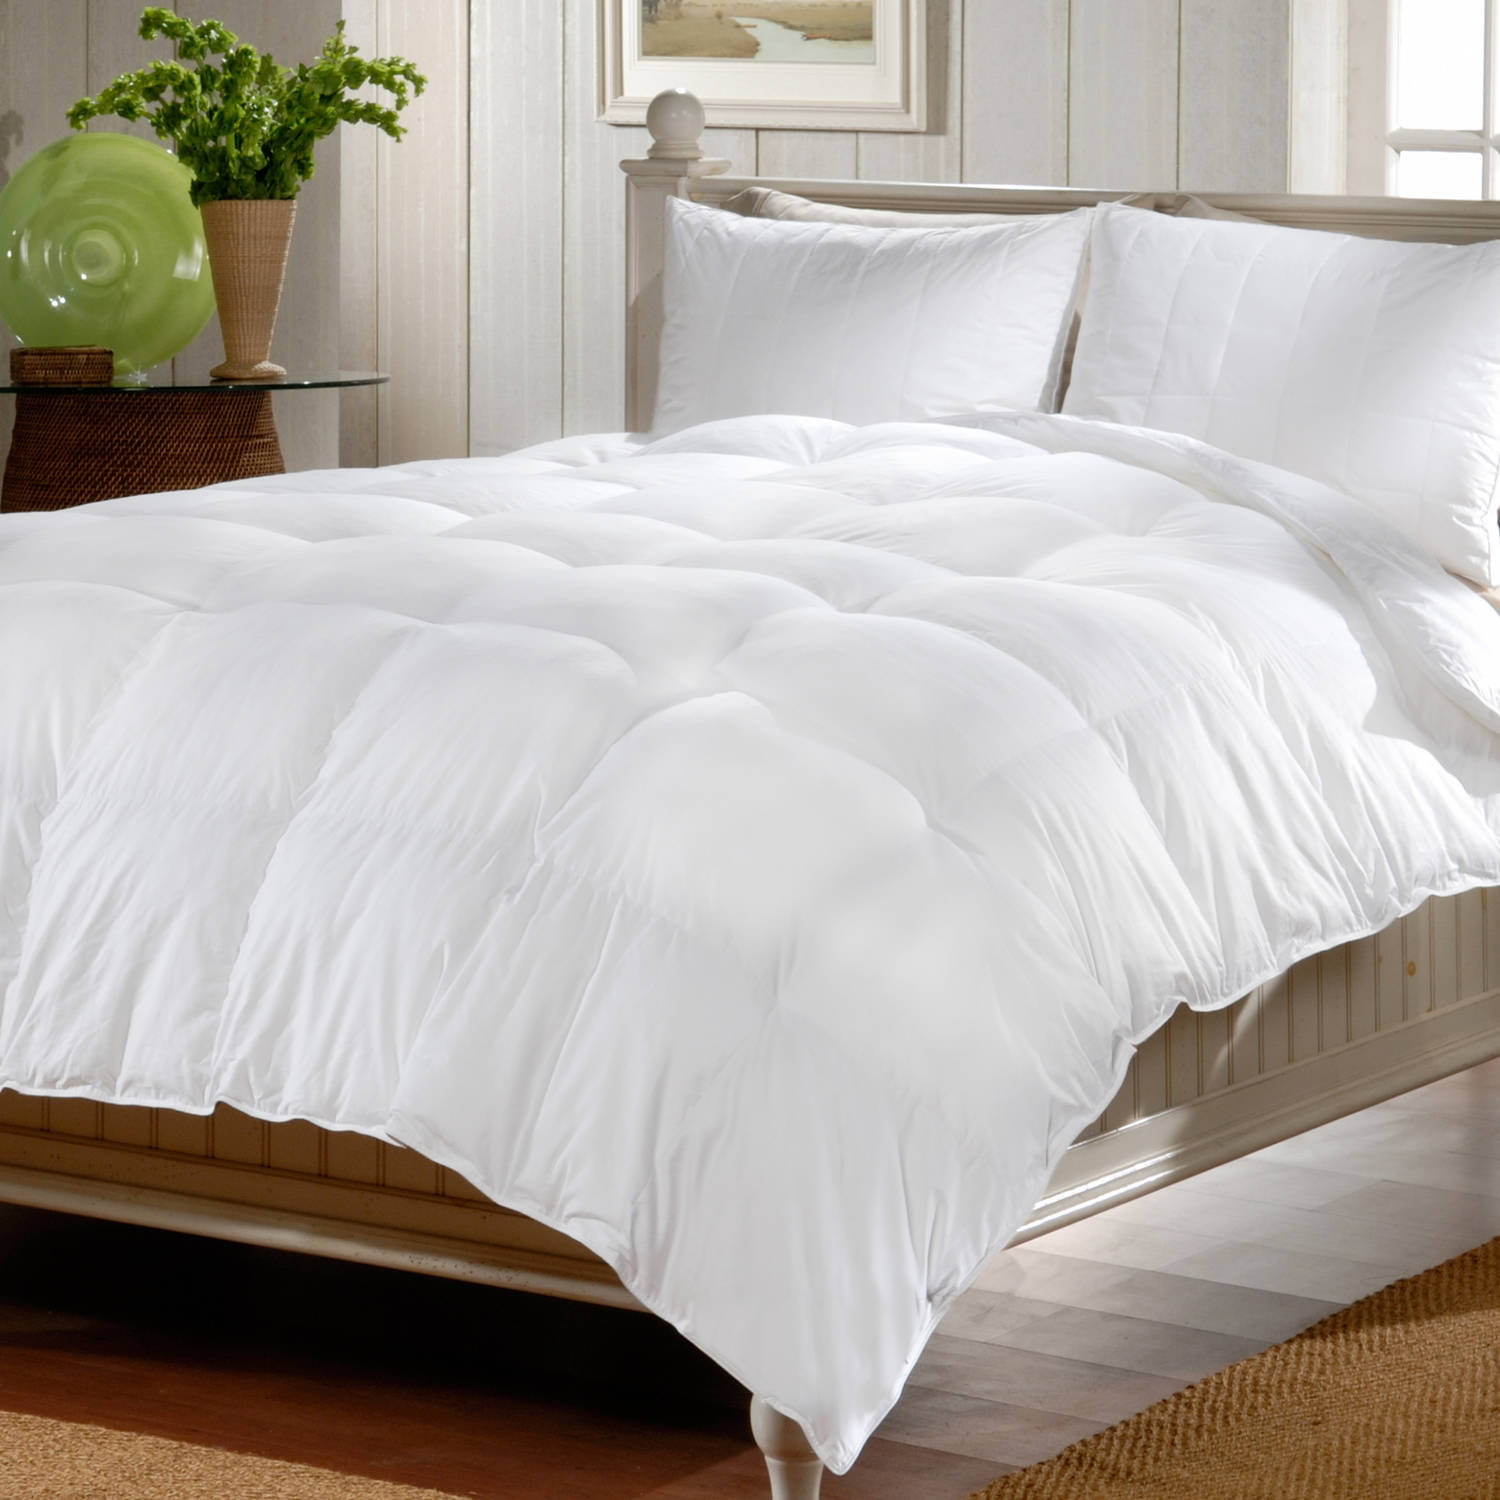 DeepSleep Down Alternative Comforter in Multiple Sizes